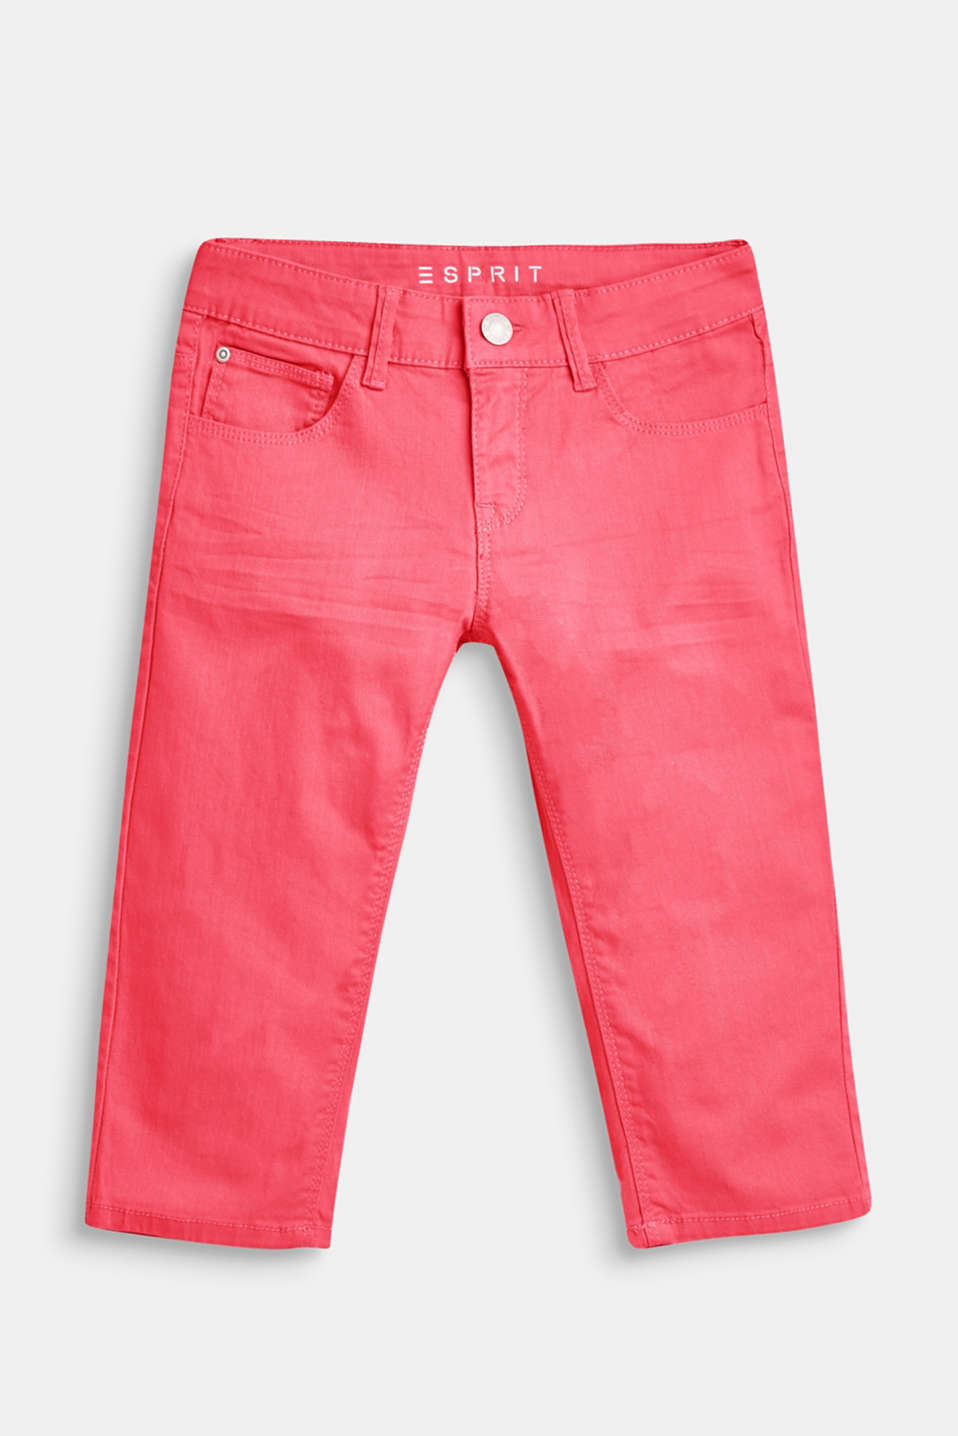 Esprit - Coloured stretch jeans in a Capri length